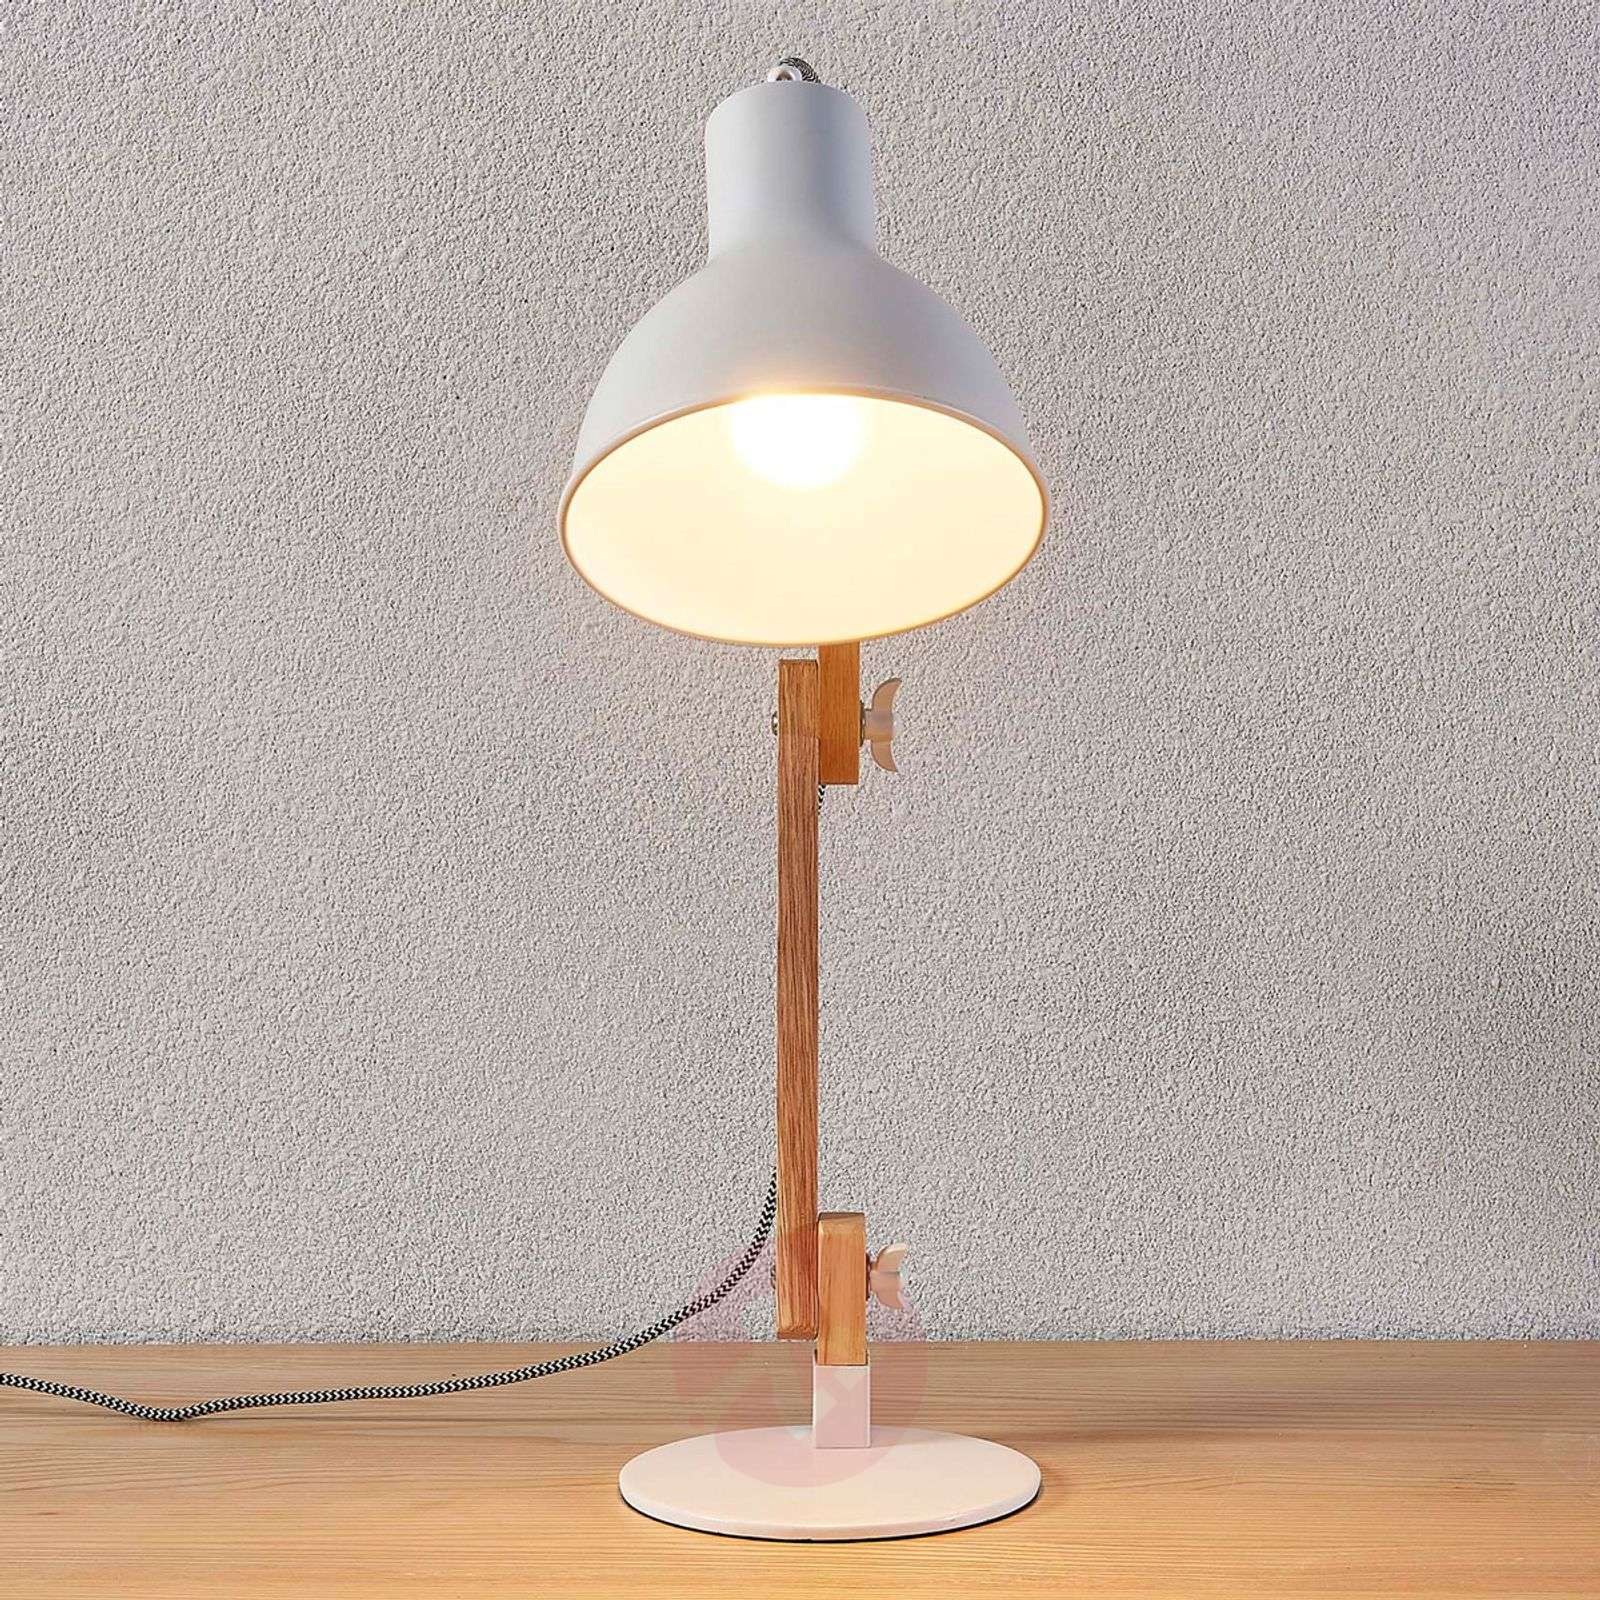 71e95fe71f16 ... Wood desk lamp Shivanja with white lampshade-9621151-03 ...